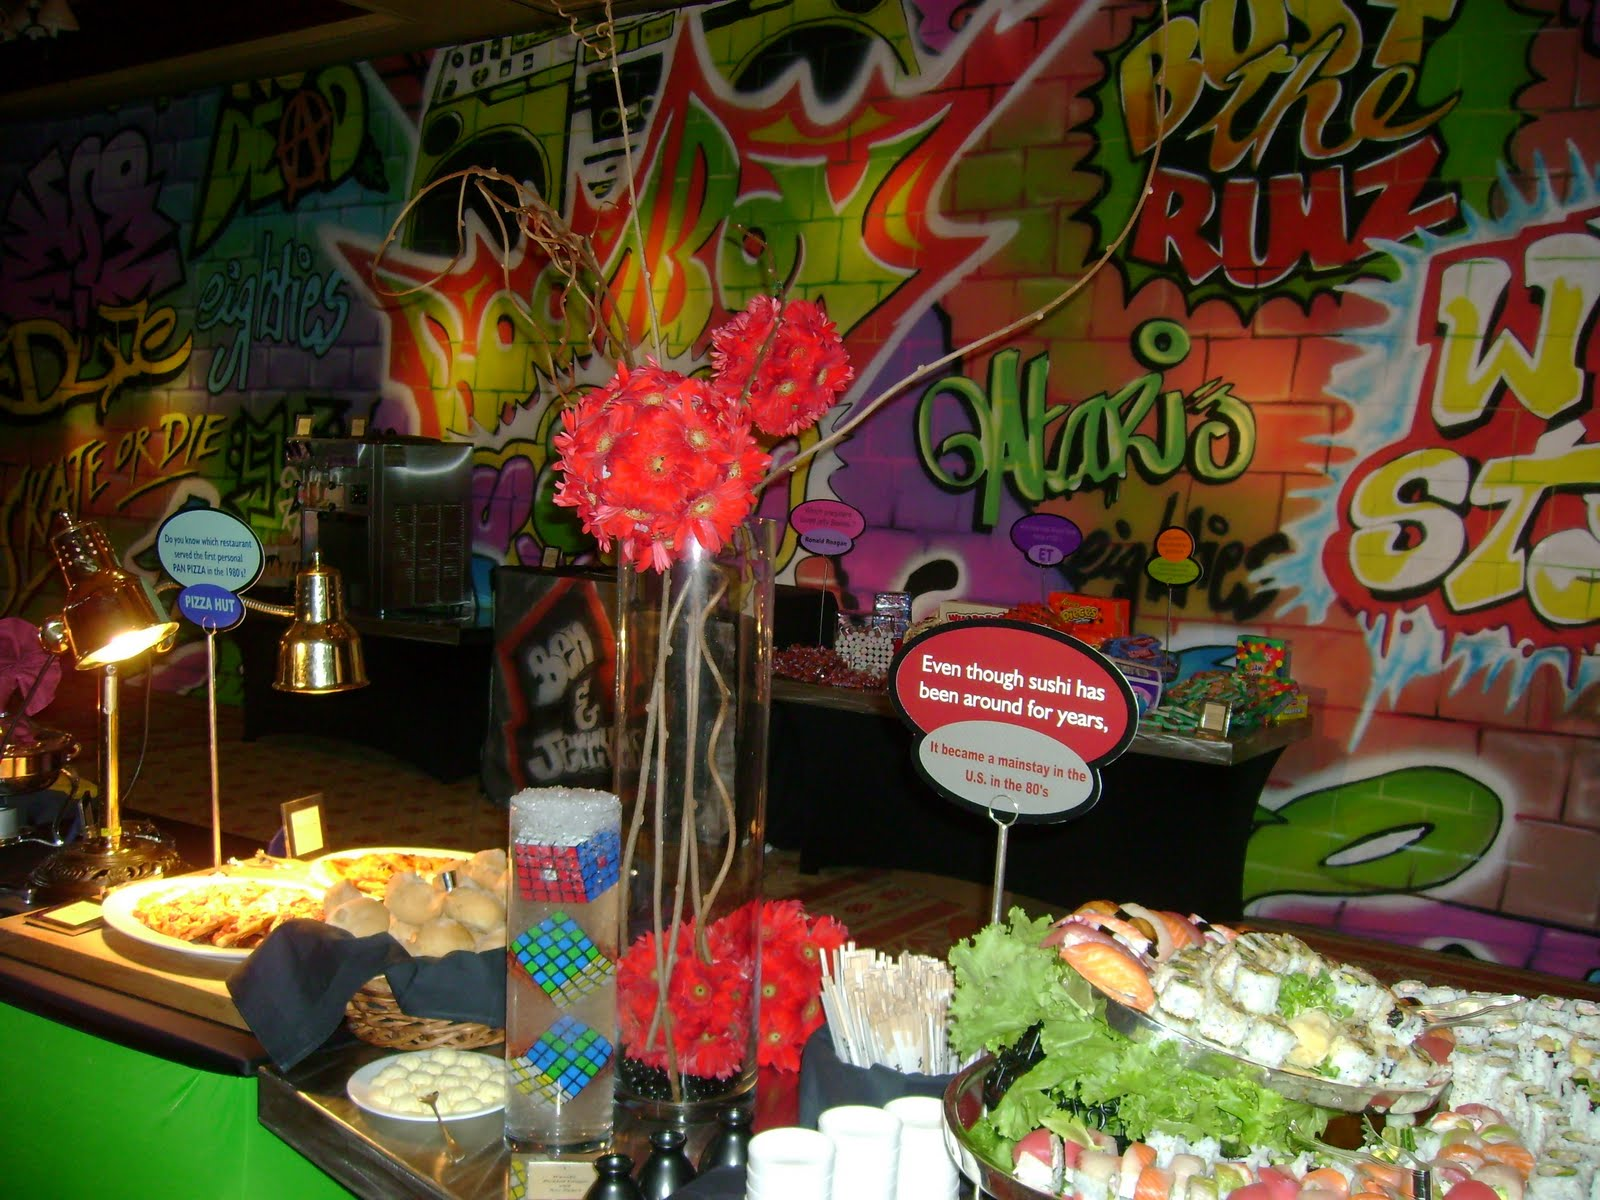 1980 39 s party ideas on pinterest 80s party 80s theme and for 1980s party decoration ideas